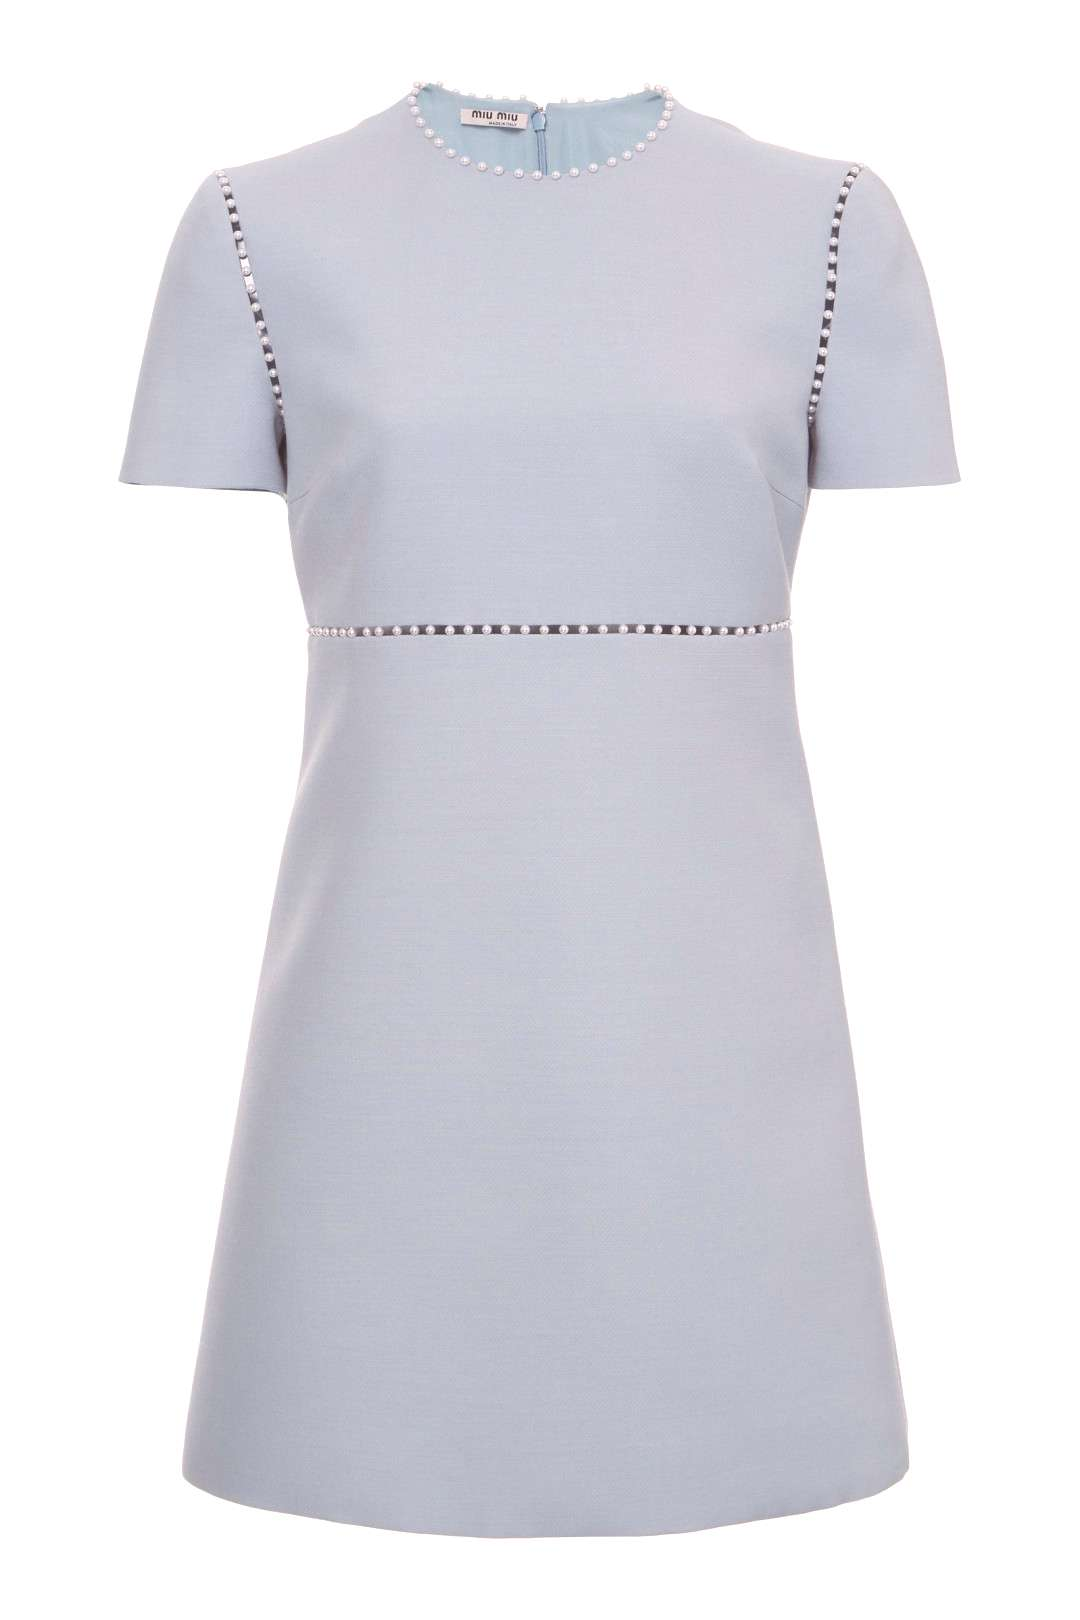 MIU MIU - dress - Pearl Embellished Mini Dress